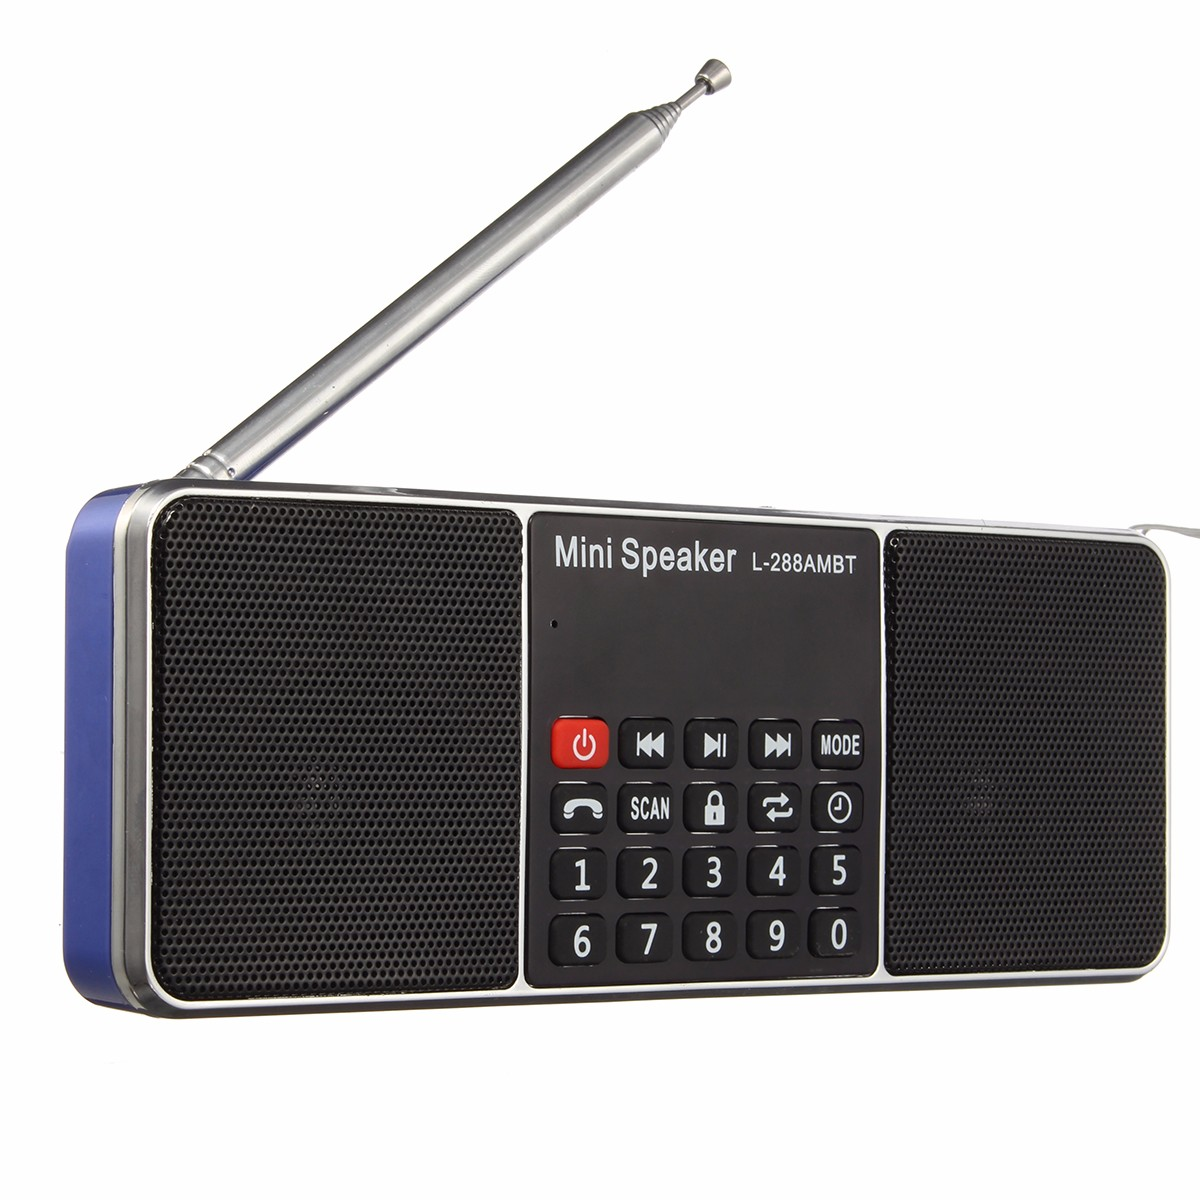 L-288 Portable Digital Stereo AM FM Radio Clock with Alarm Media Dual Speaker Cell Phone USB Charger MP3 Music Player TF Card/USB Disk with LED Screen Display Rechargeable